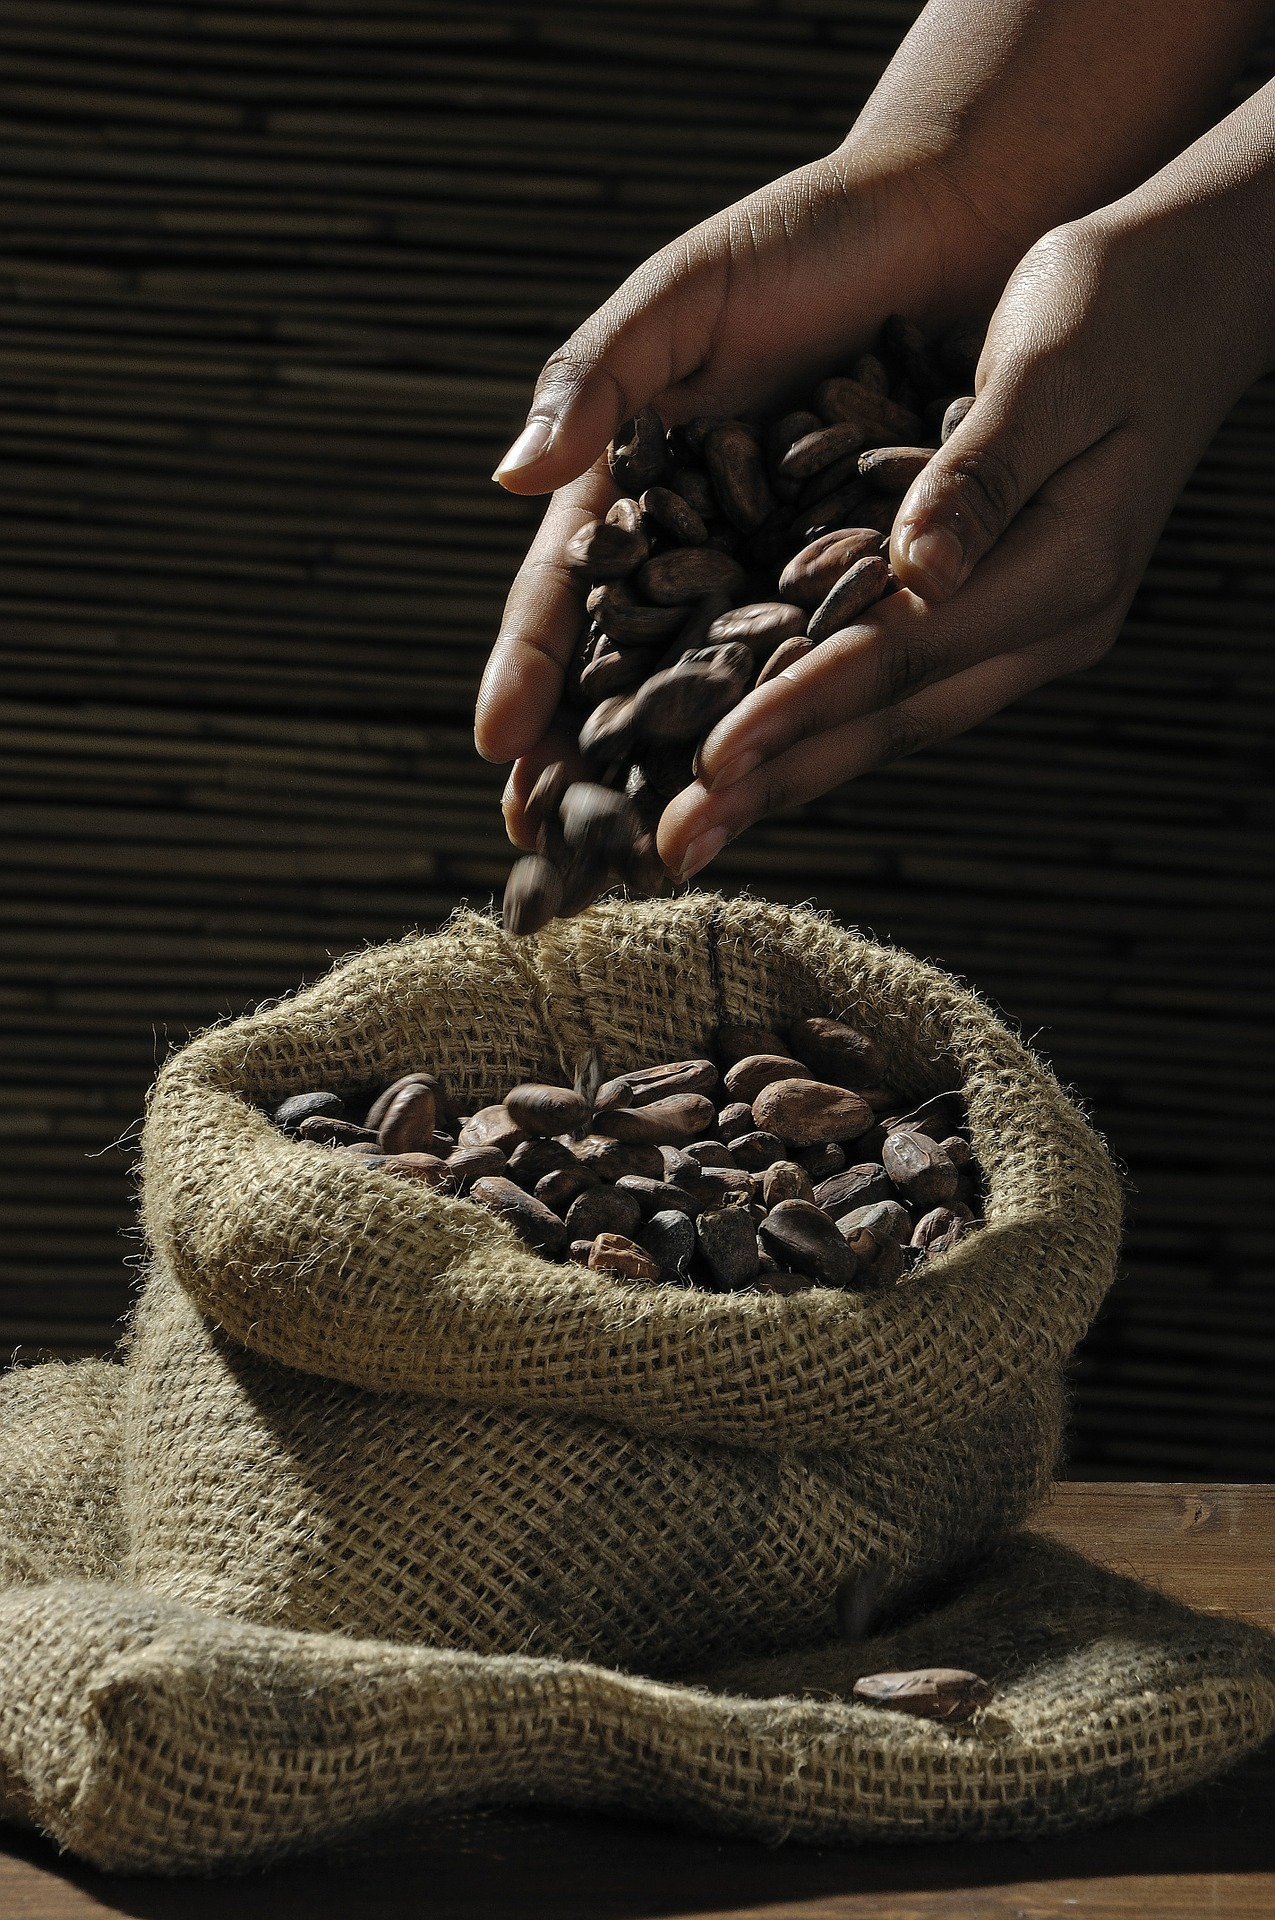 hands pouring cocoa beans into sack